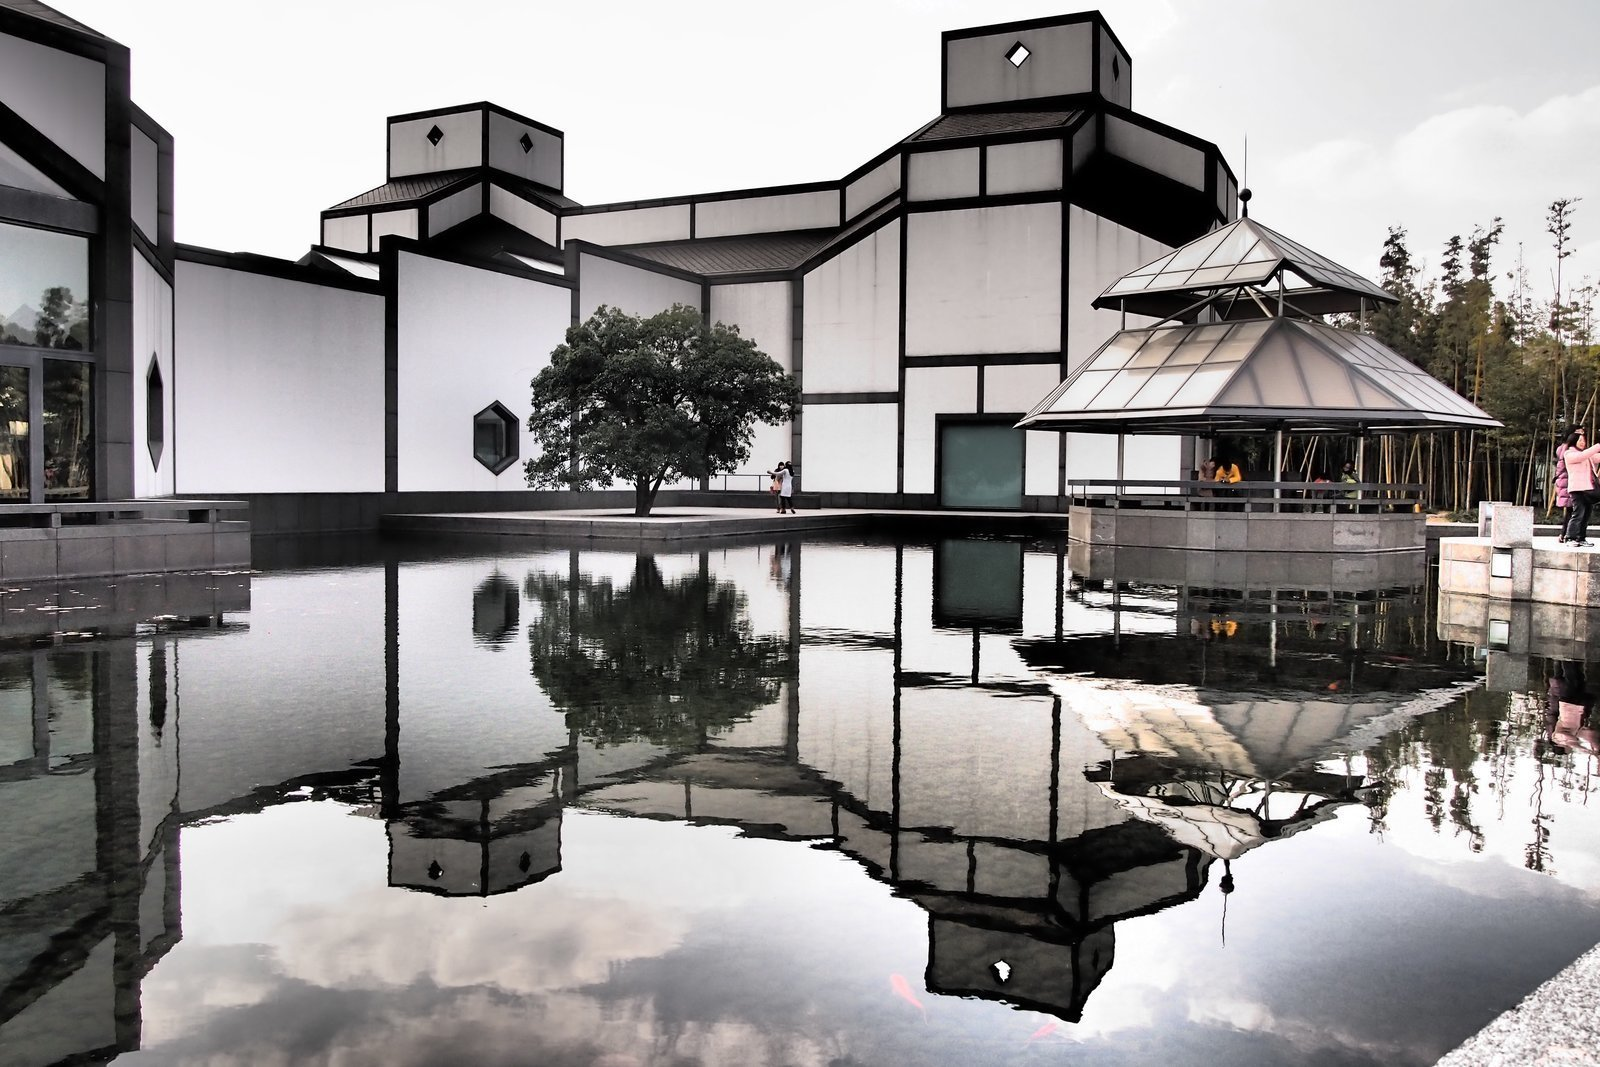 Photo 1 of 12 in 10 I.M. Pei Buildings We Love